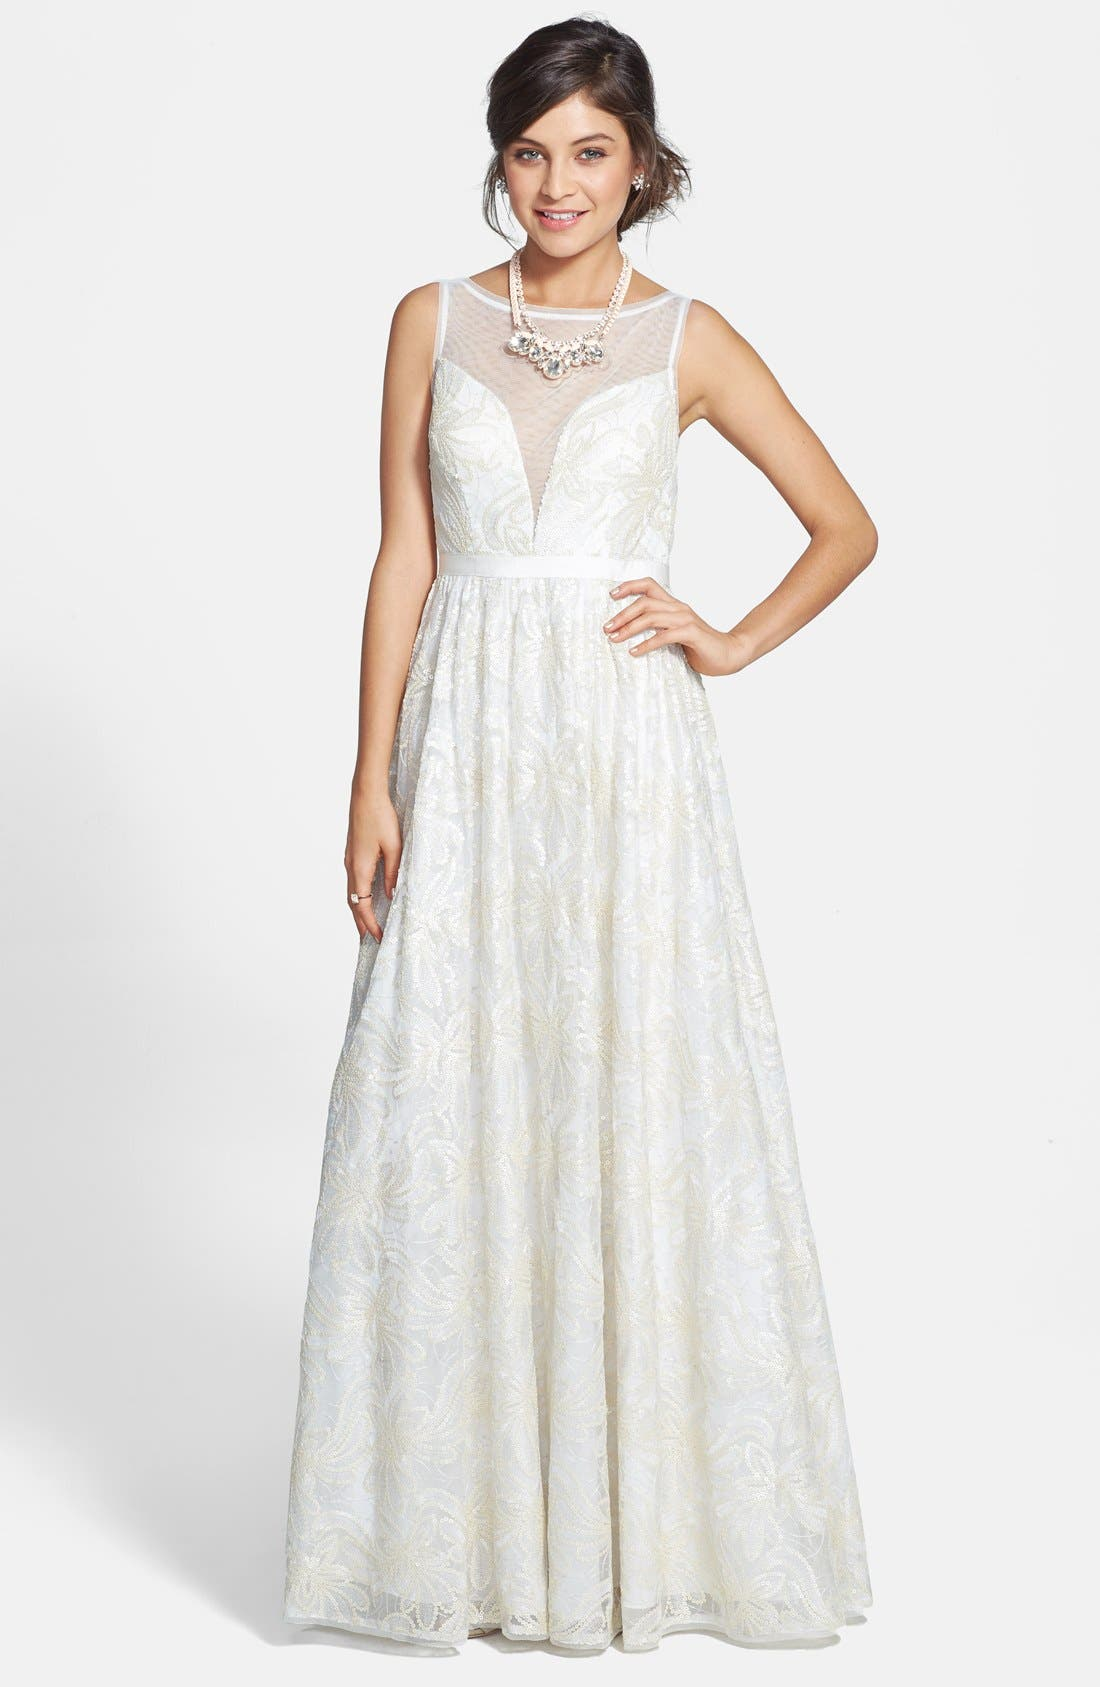 Alternate Image 1 Selected - Adrianna Papell Faux Leather Sequin Lace Gown